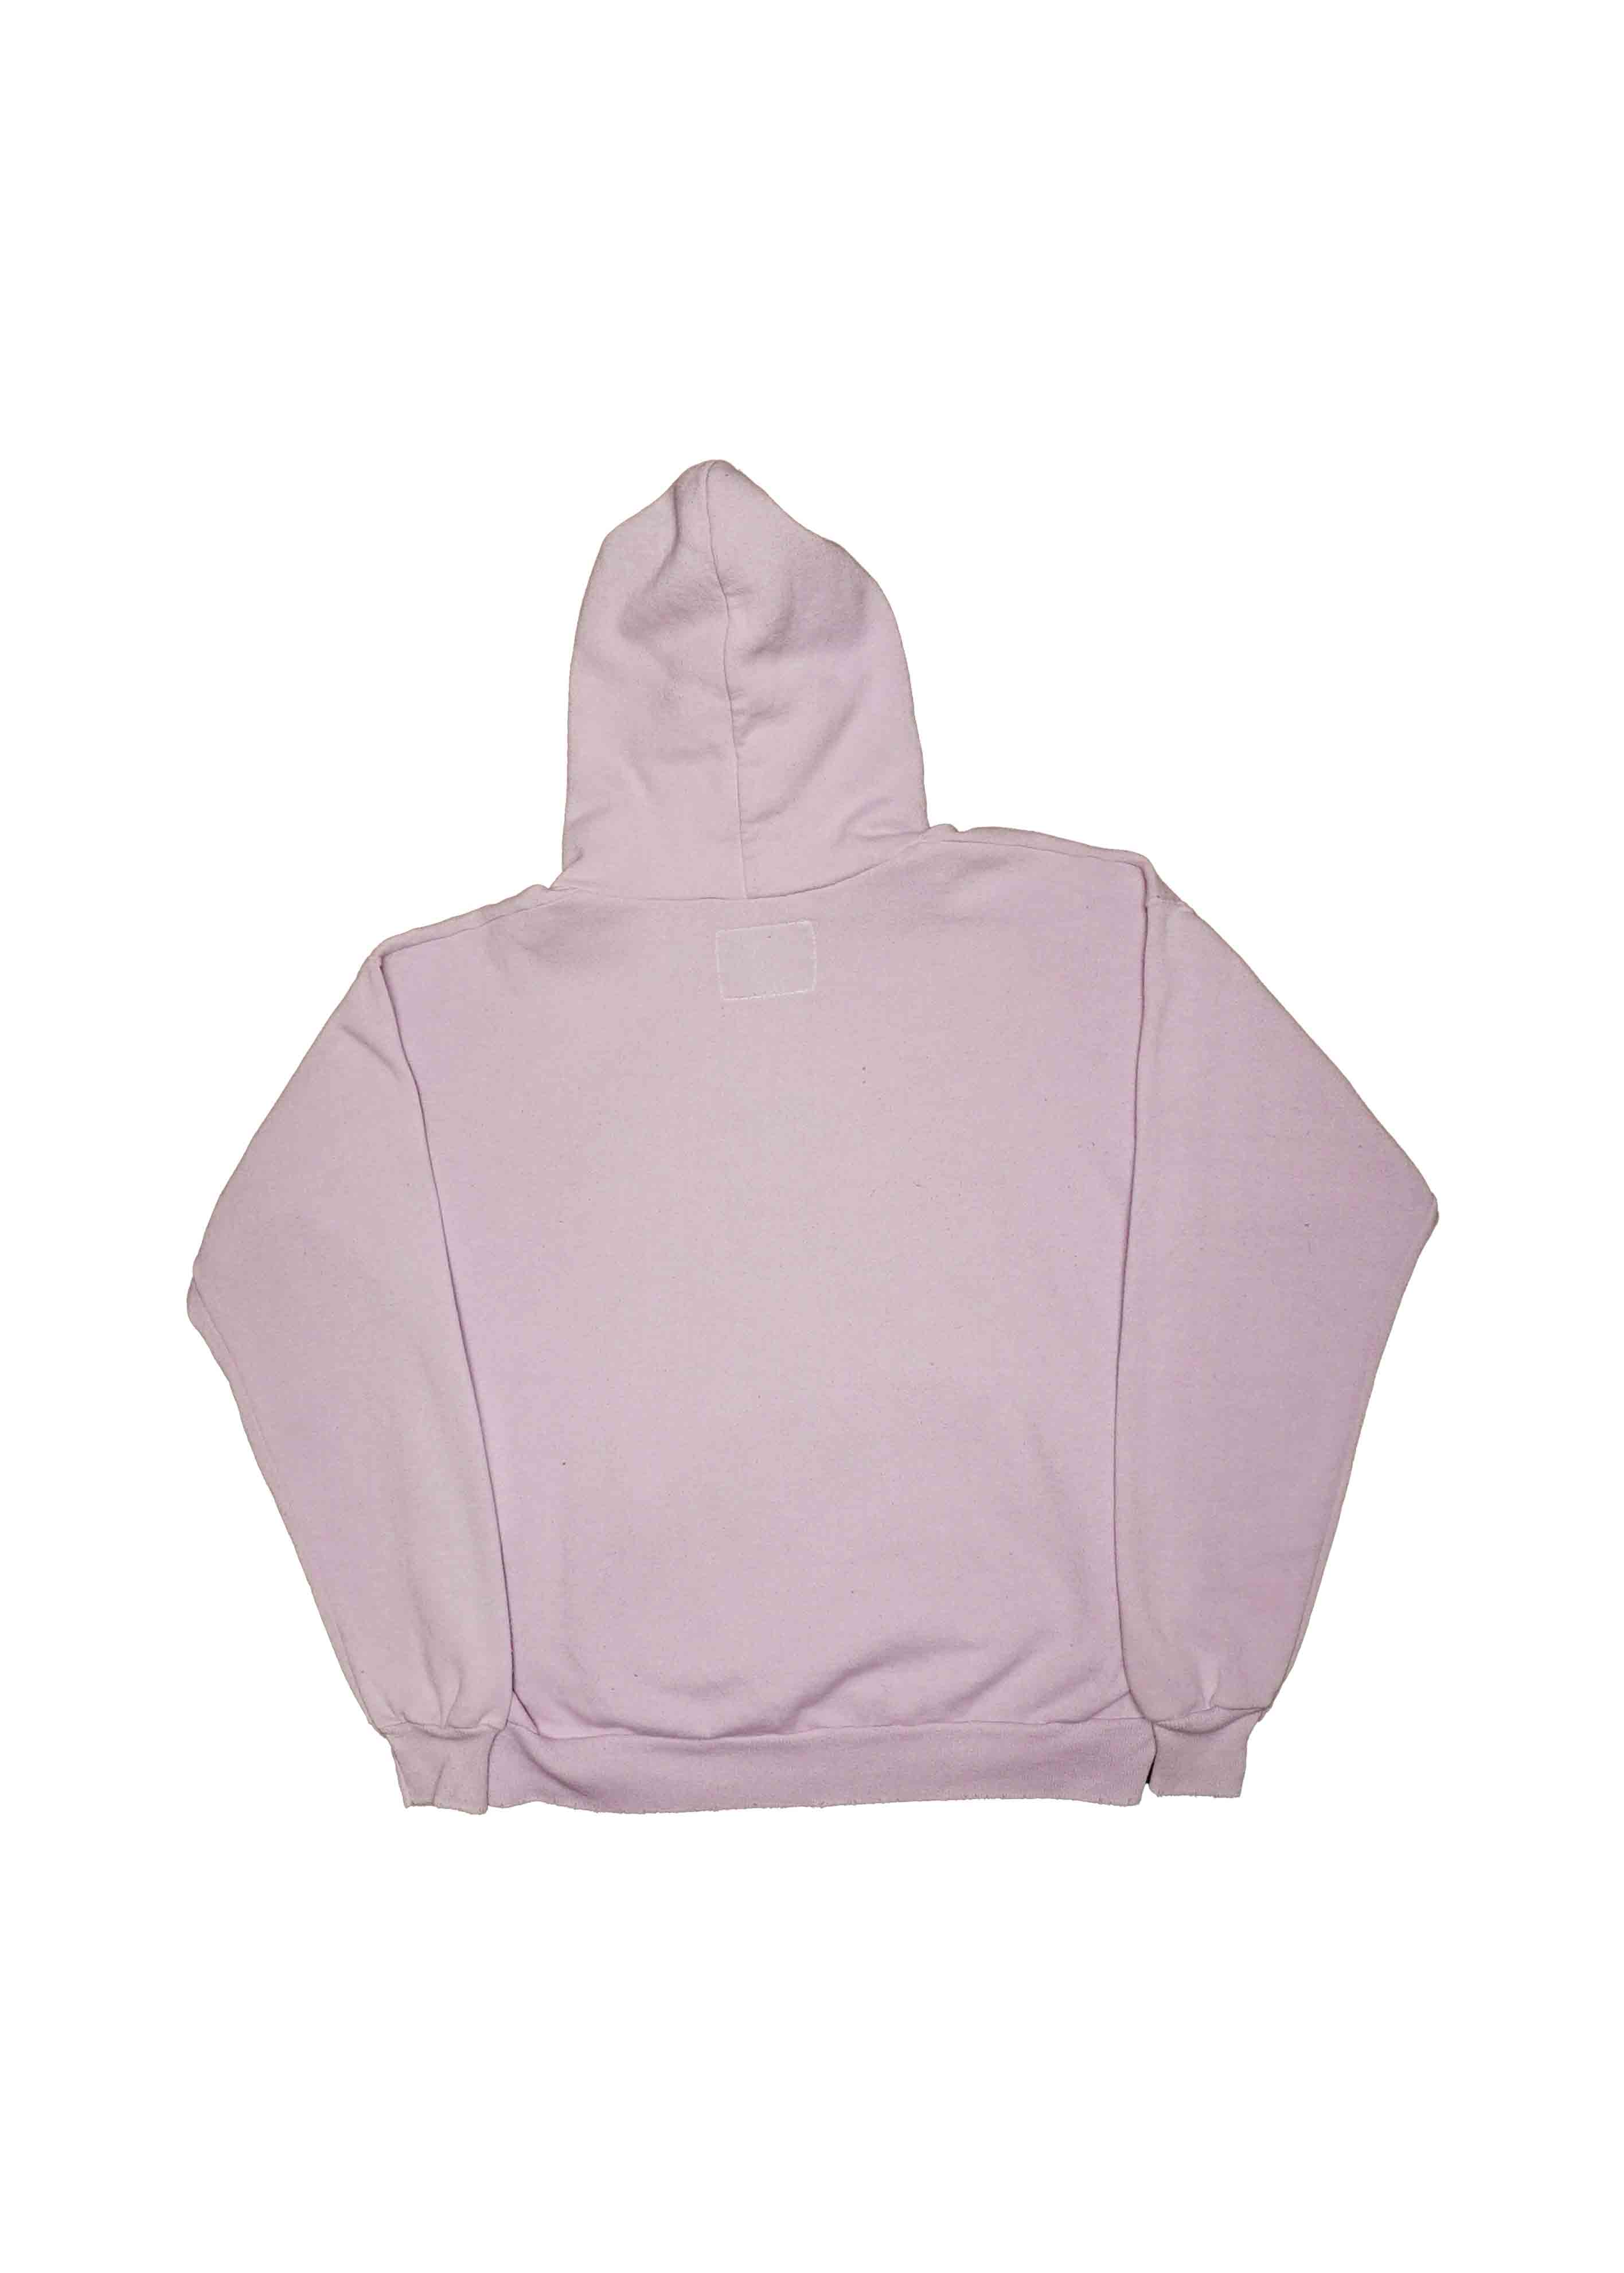 LAVENDAR MICKEY MOUSE HOODIE